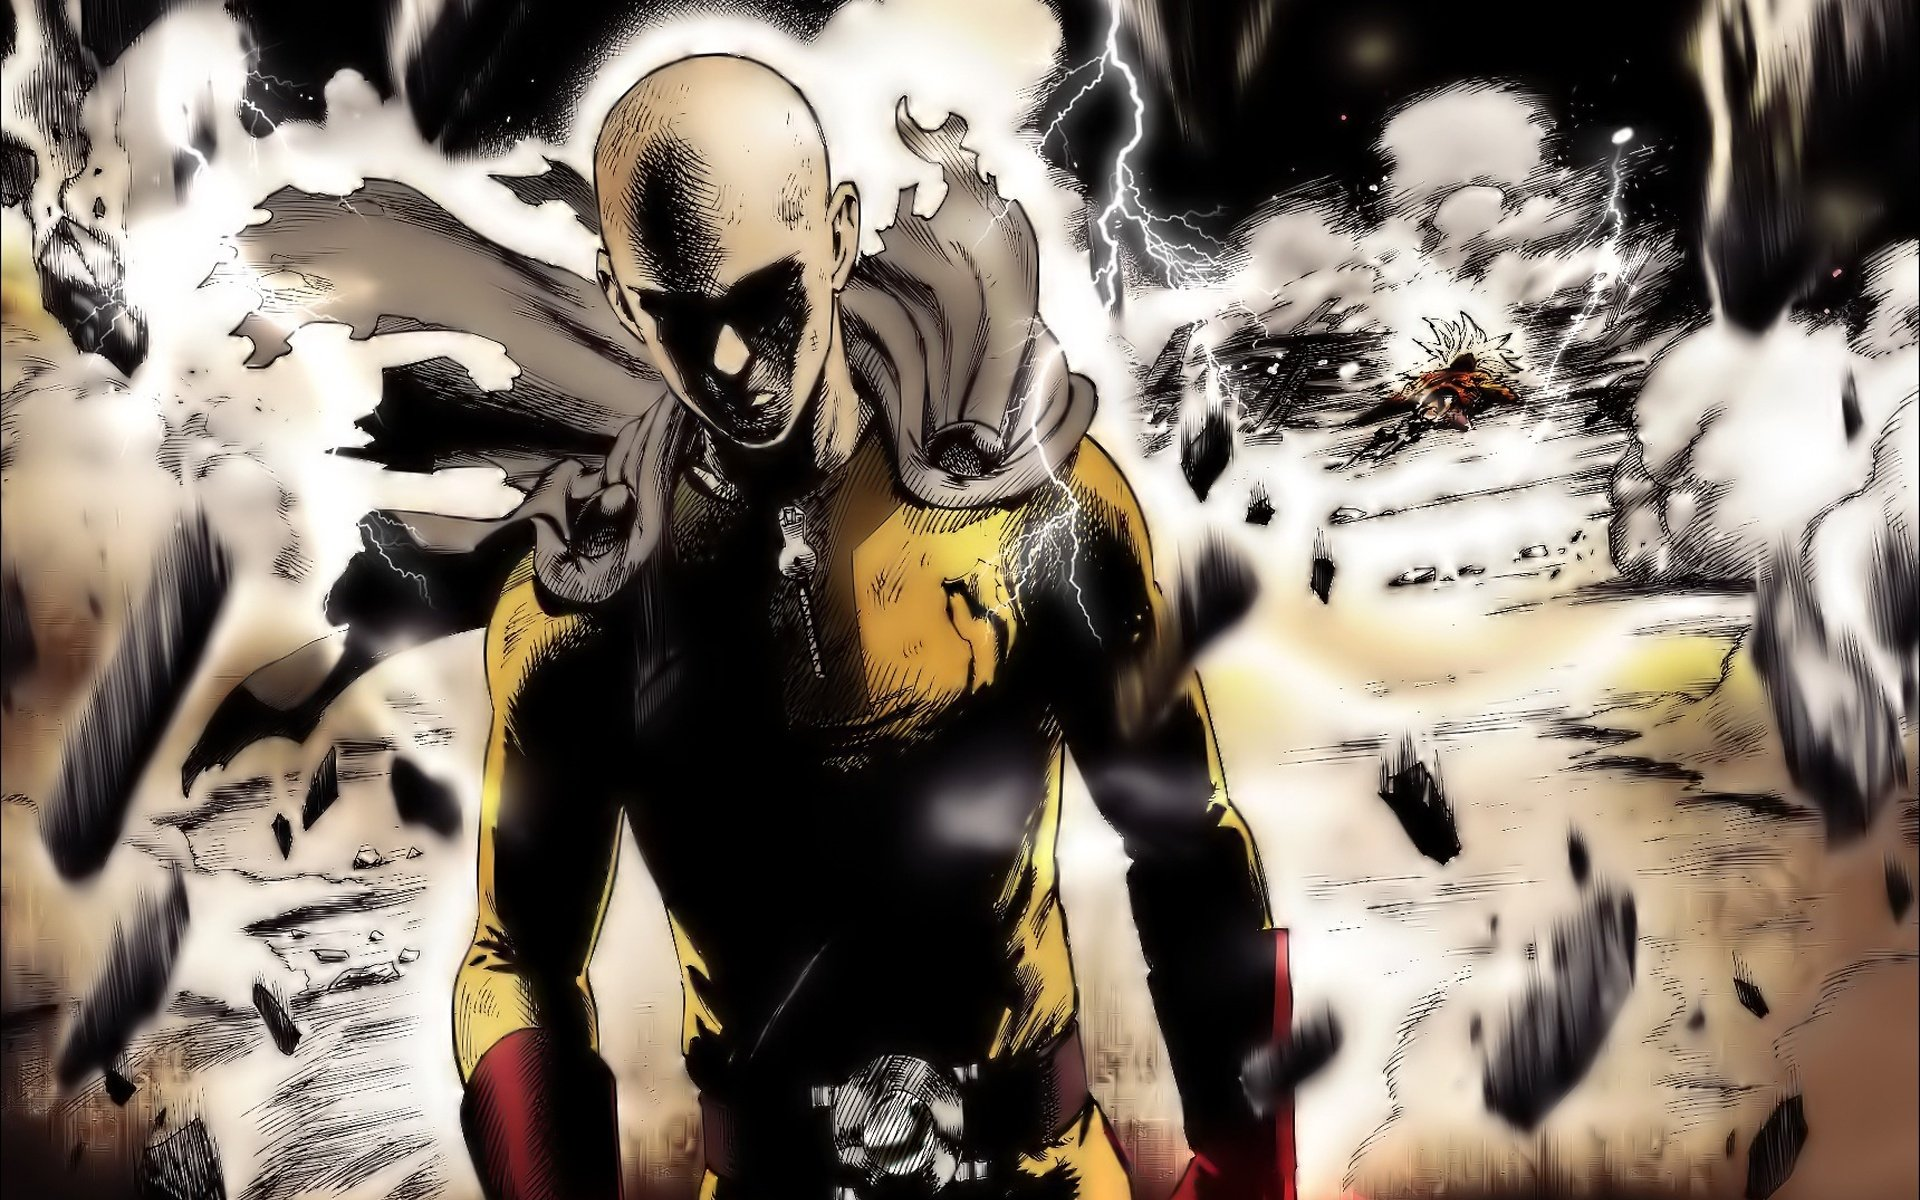 576 One Punch Man Hd Wallpapers Background Images Wallpaper Abyss